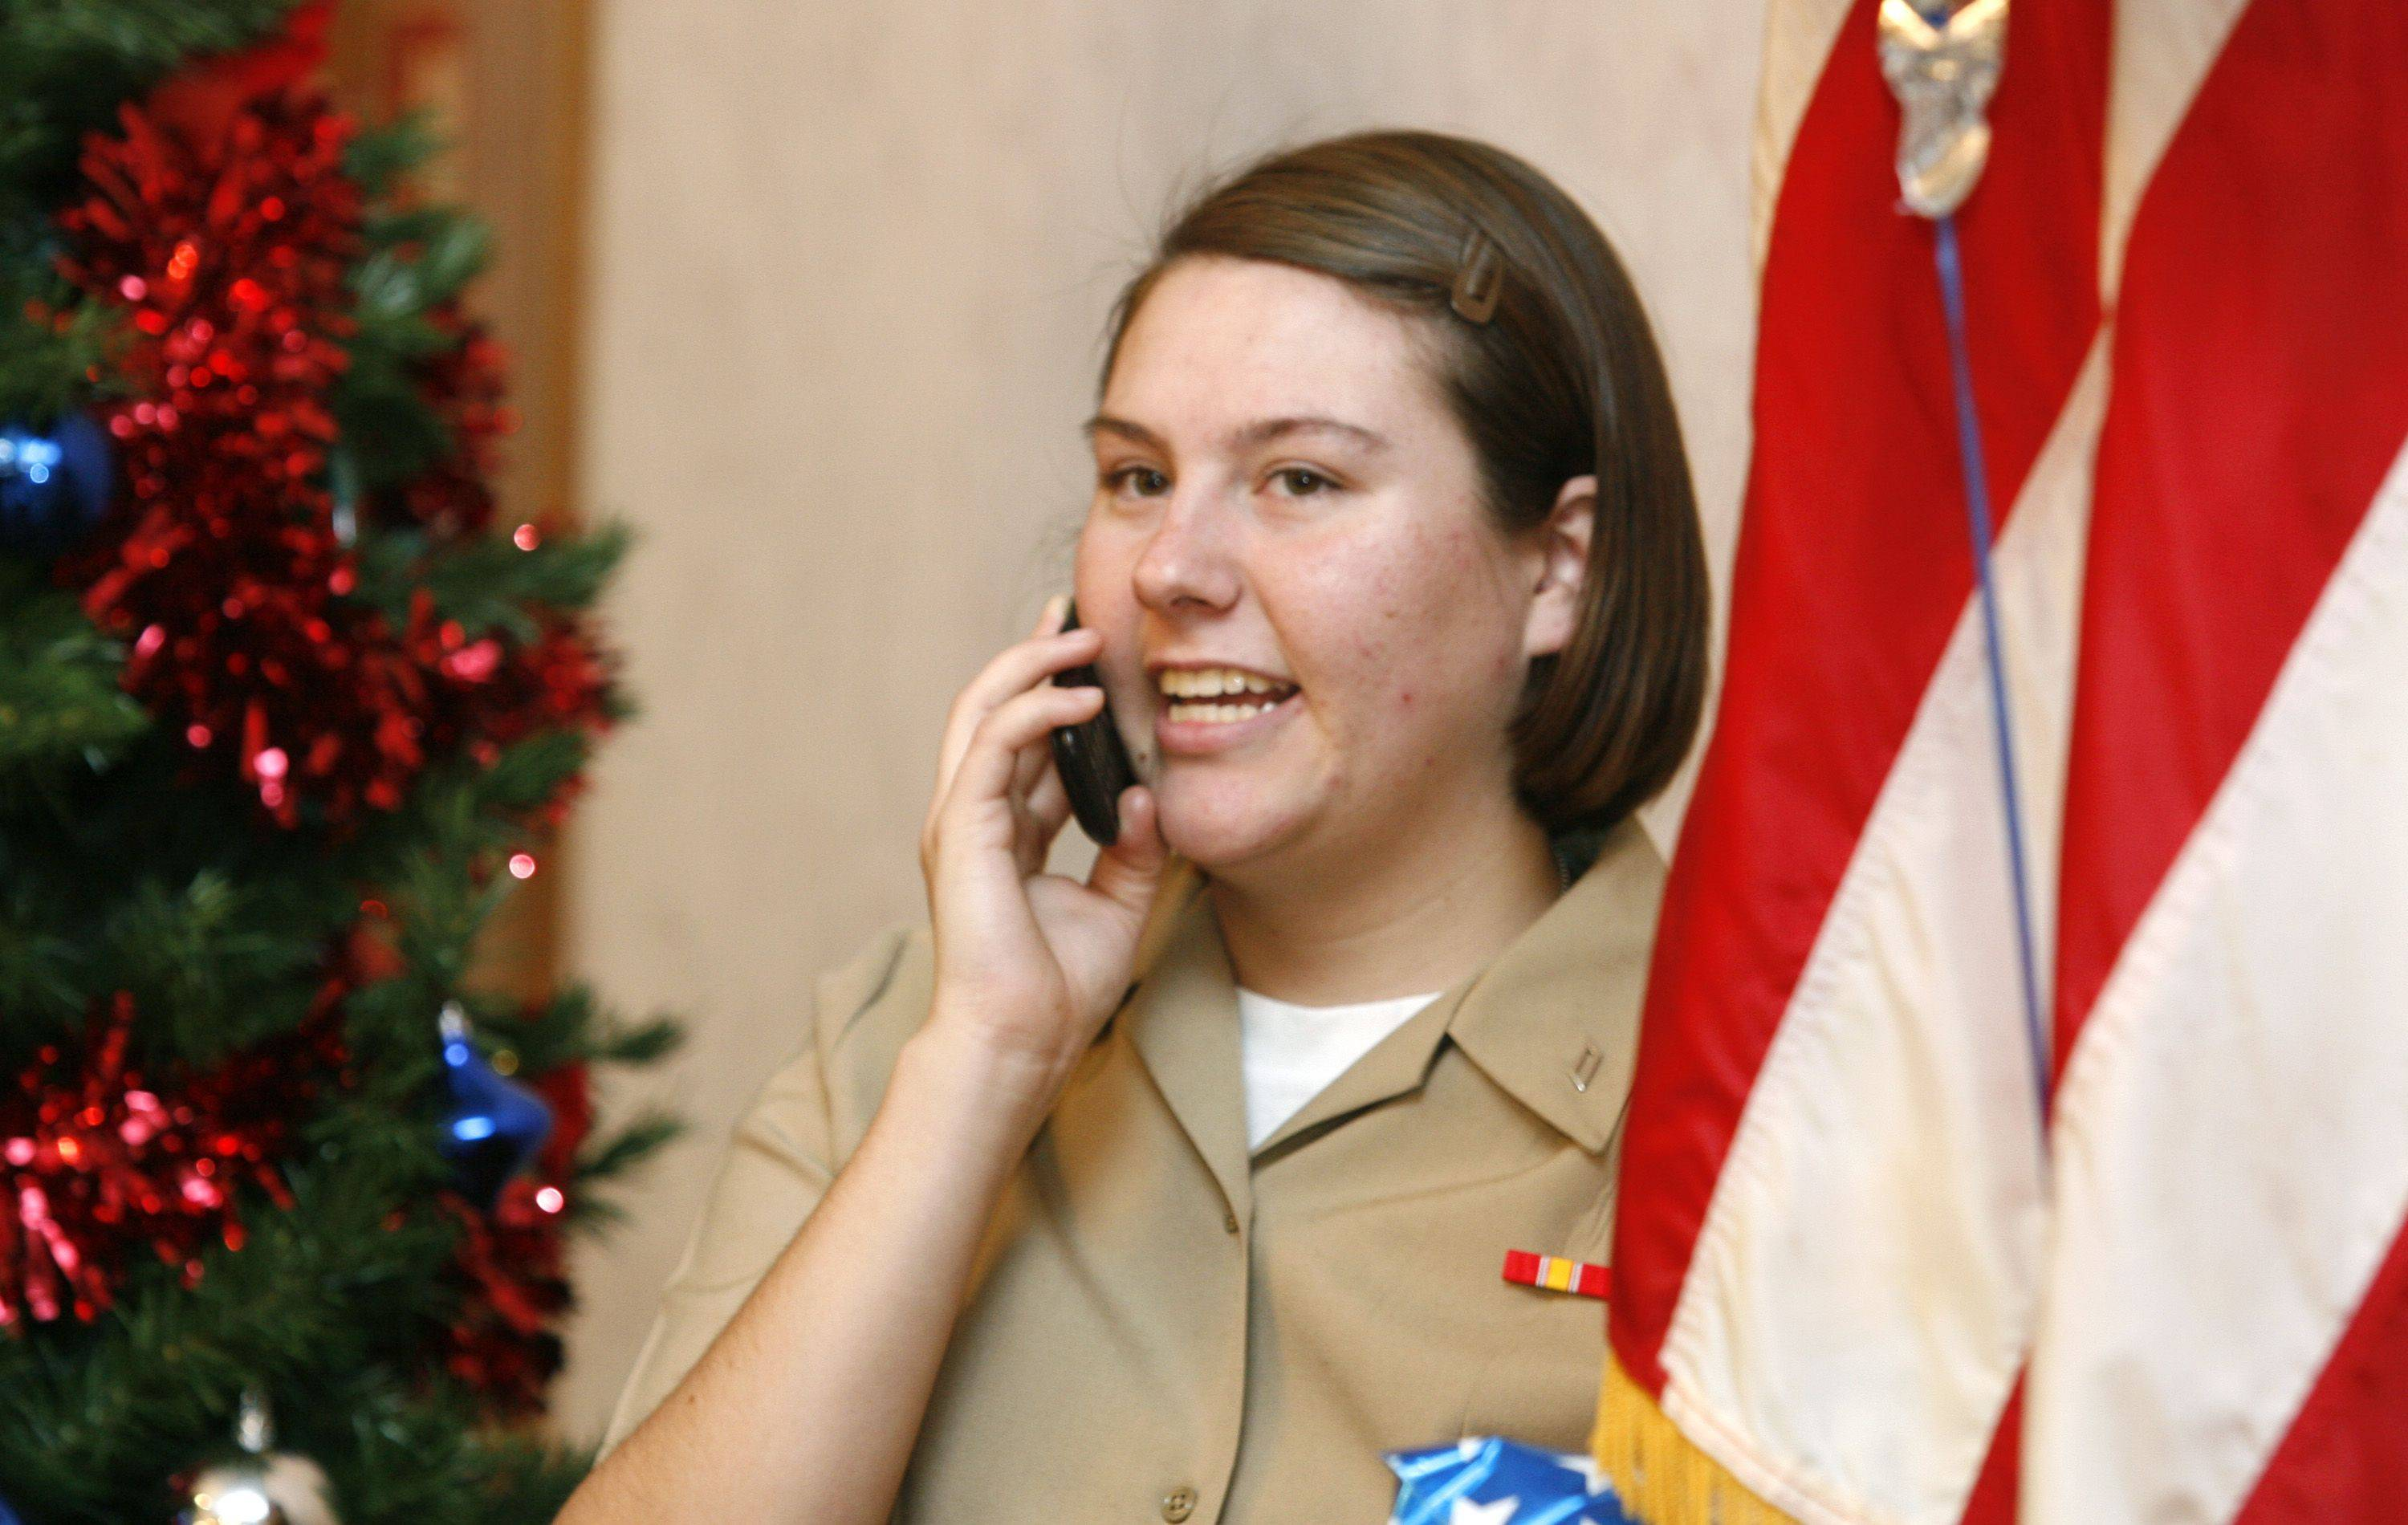 Ashley Marks of Sandusky, Michigan calls home. Marks, along with 150 other Great Lakes Navy recruits, visited Villa Park VFW Post 2801 for Thanksgiving dinner and entertainment.